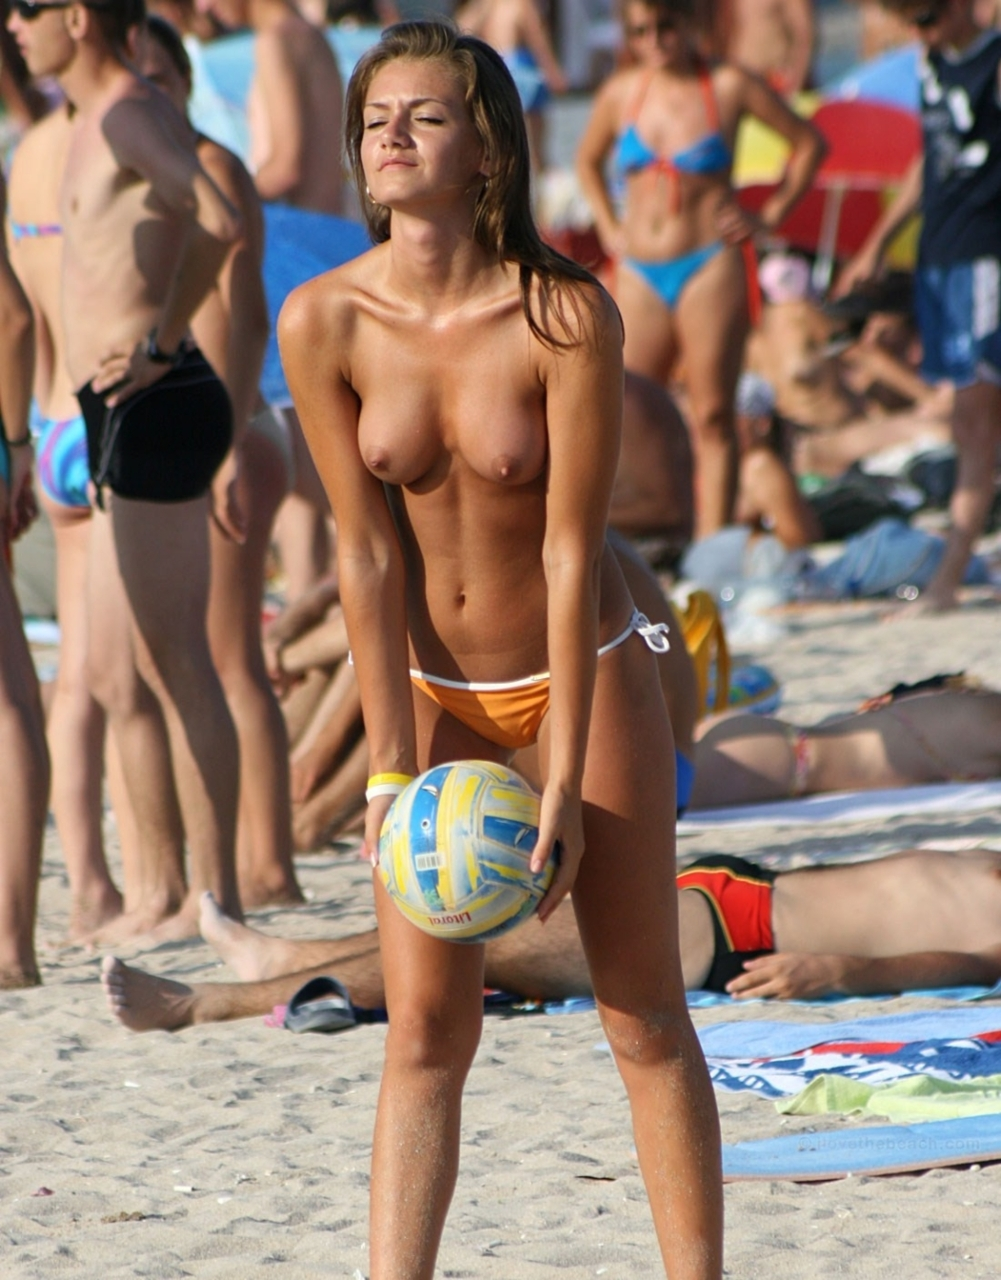 Personal messages Naked girls playing beach volleyball